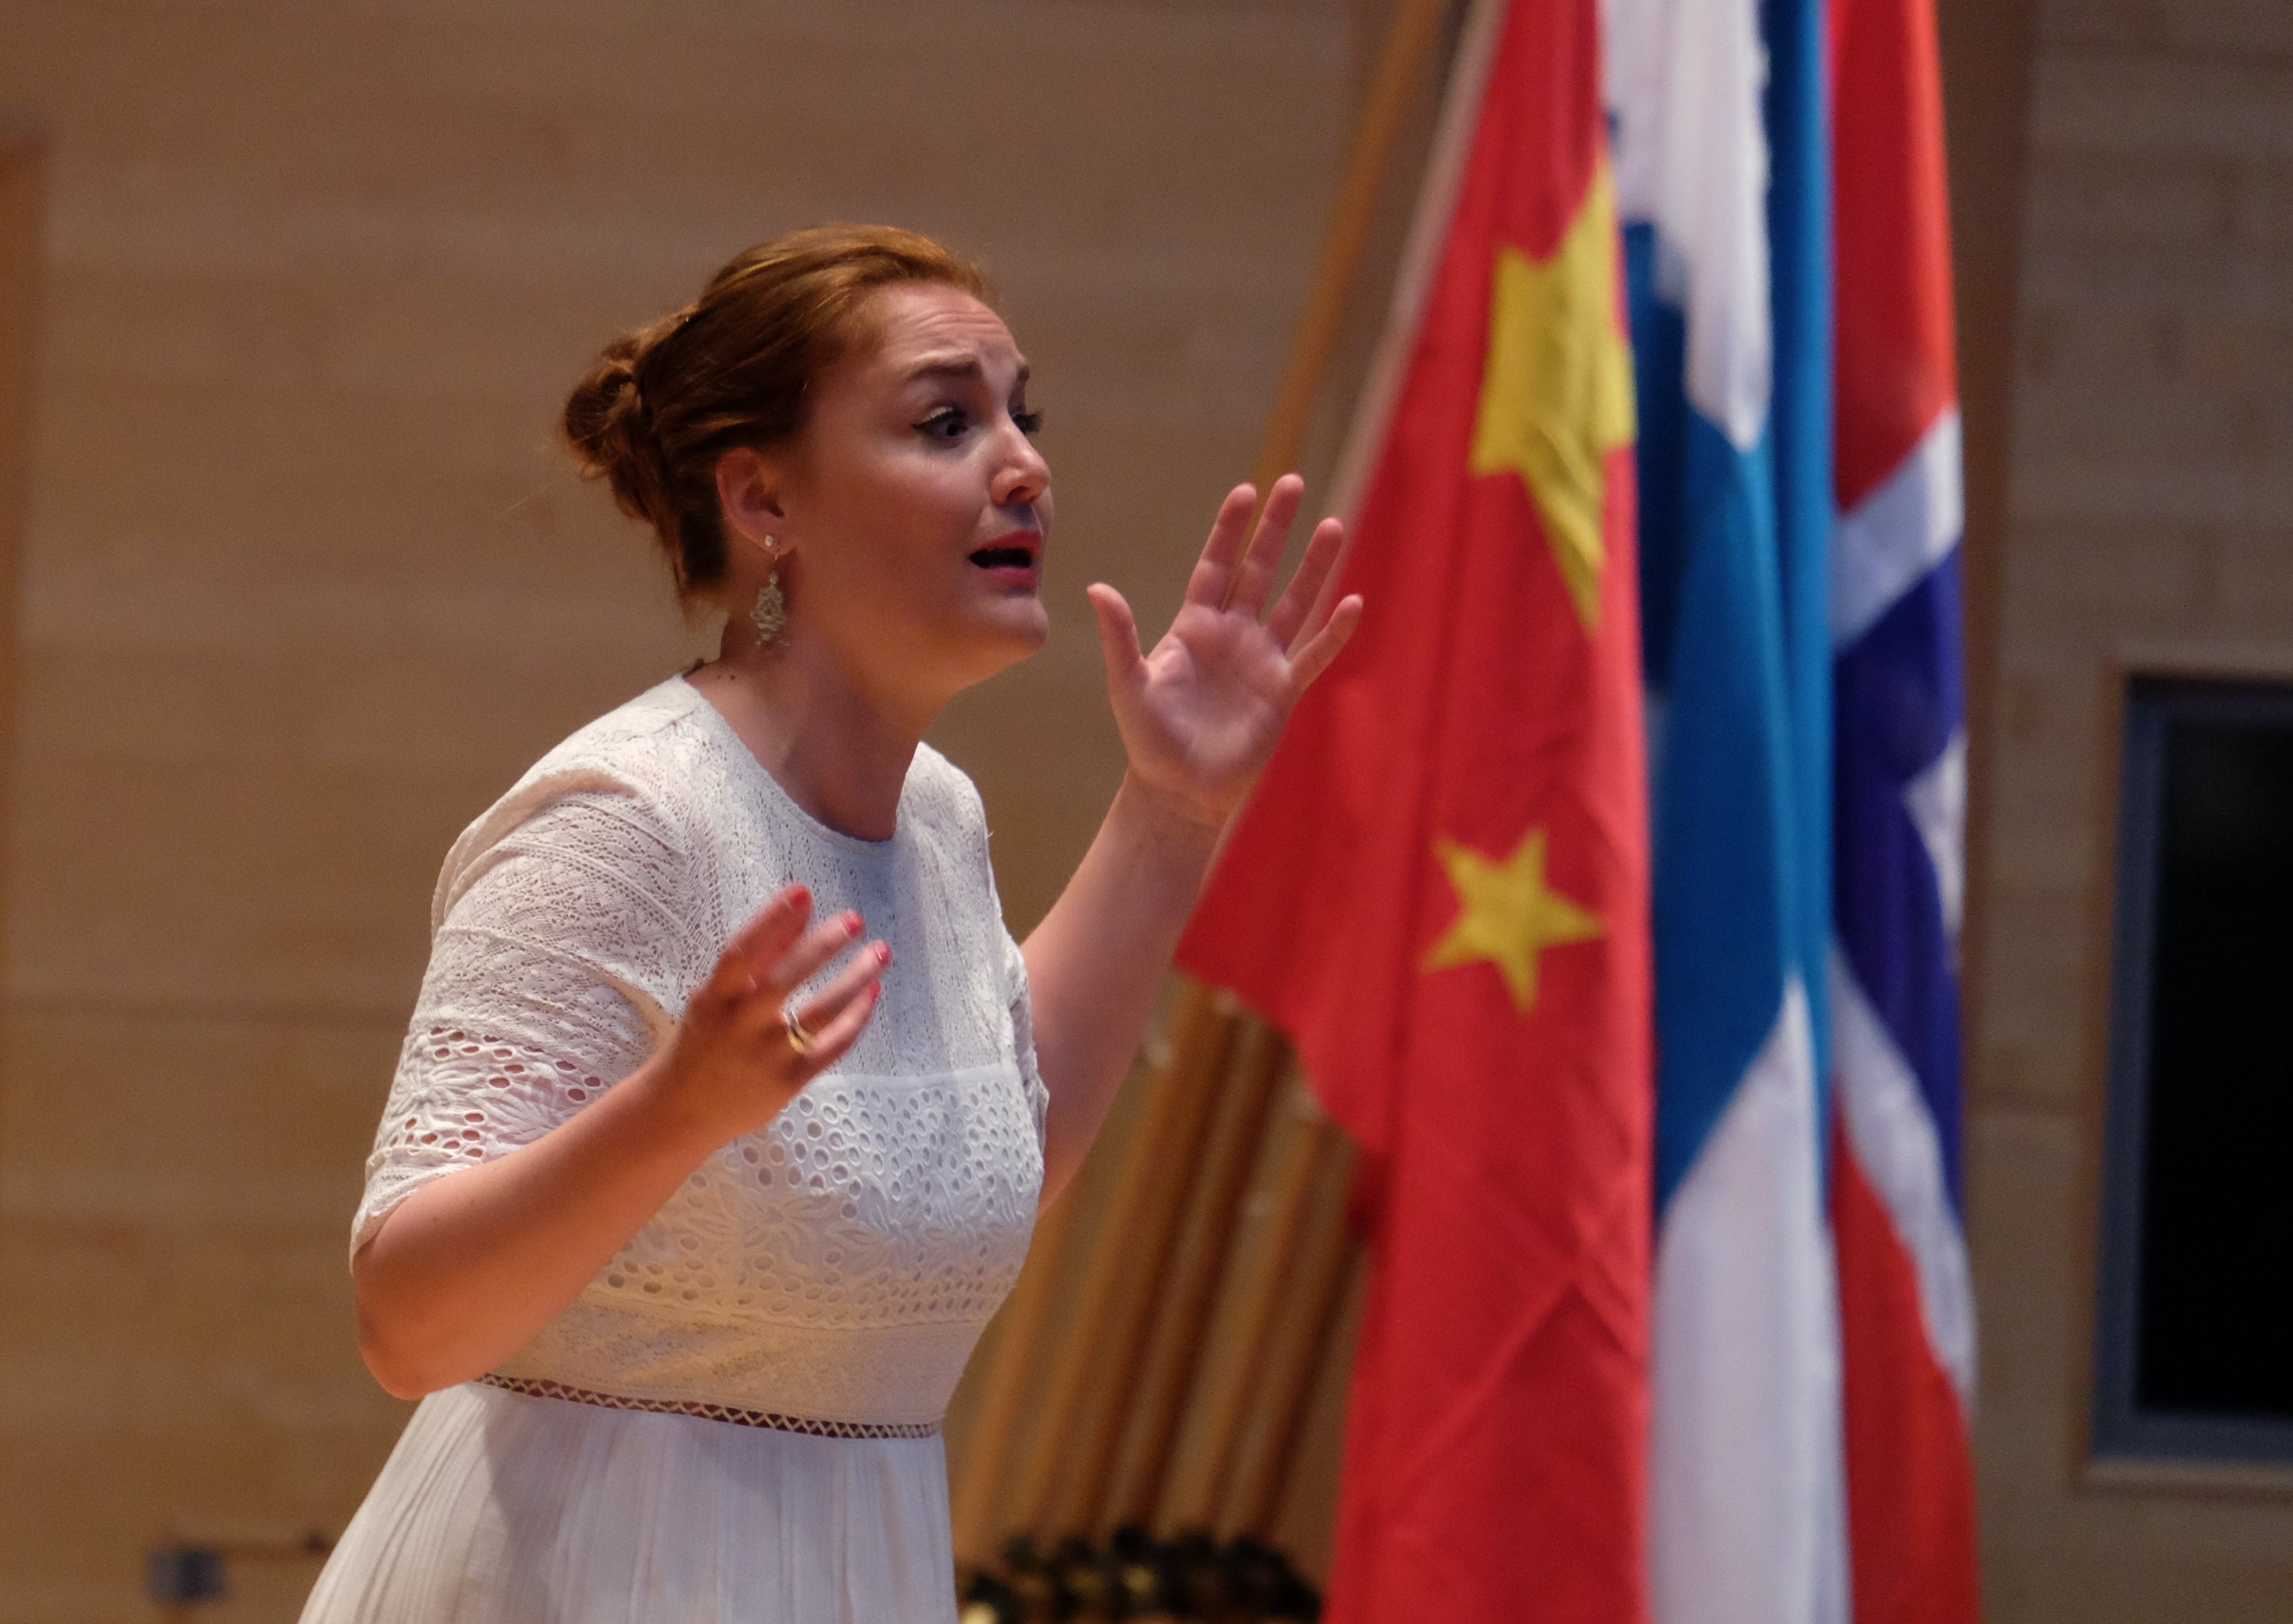 Woman singing with flags in the background